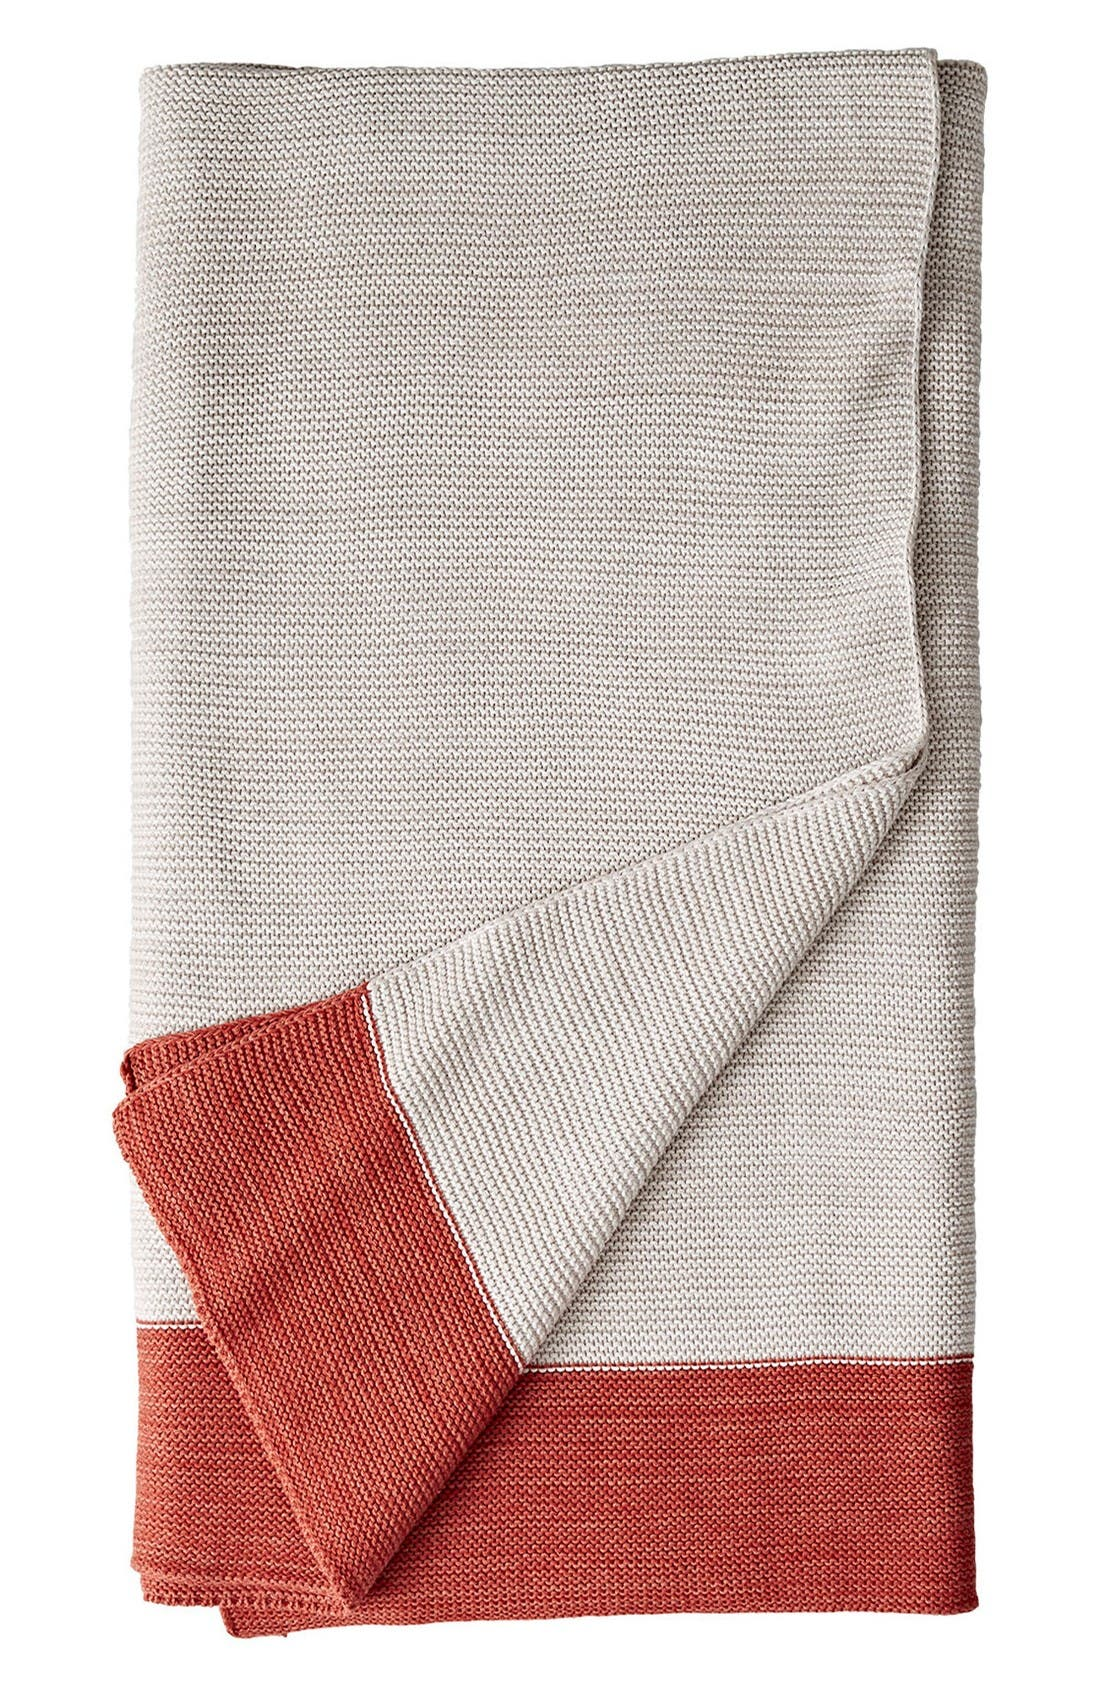 Marled Knit Throw,                             Main thumbnail 1, color,                             Red